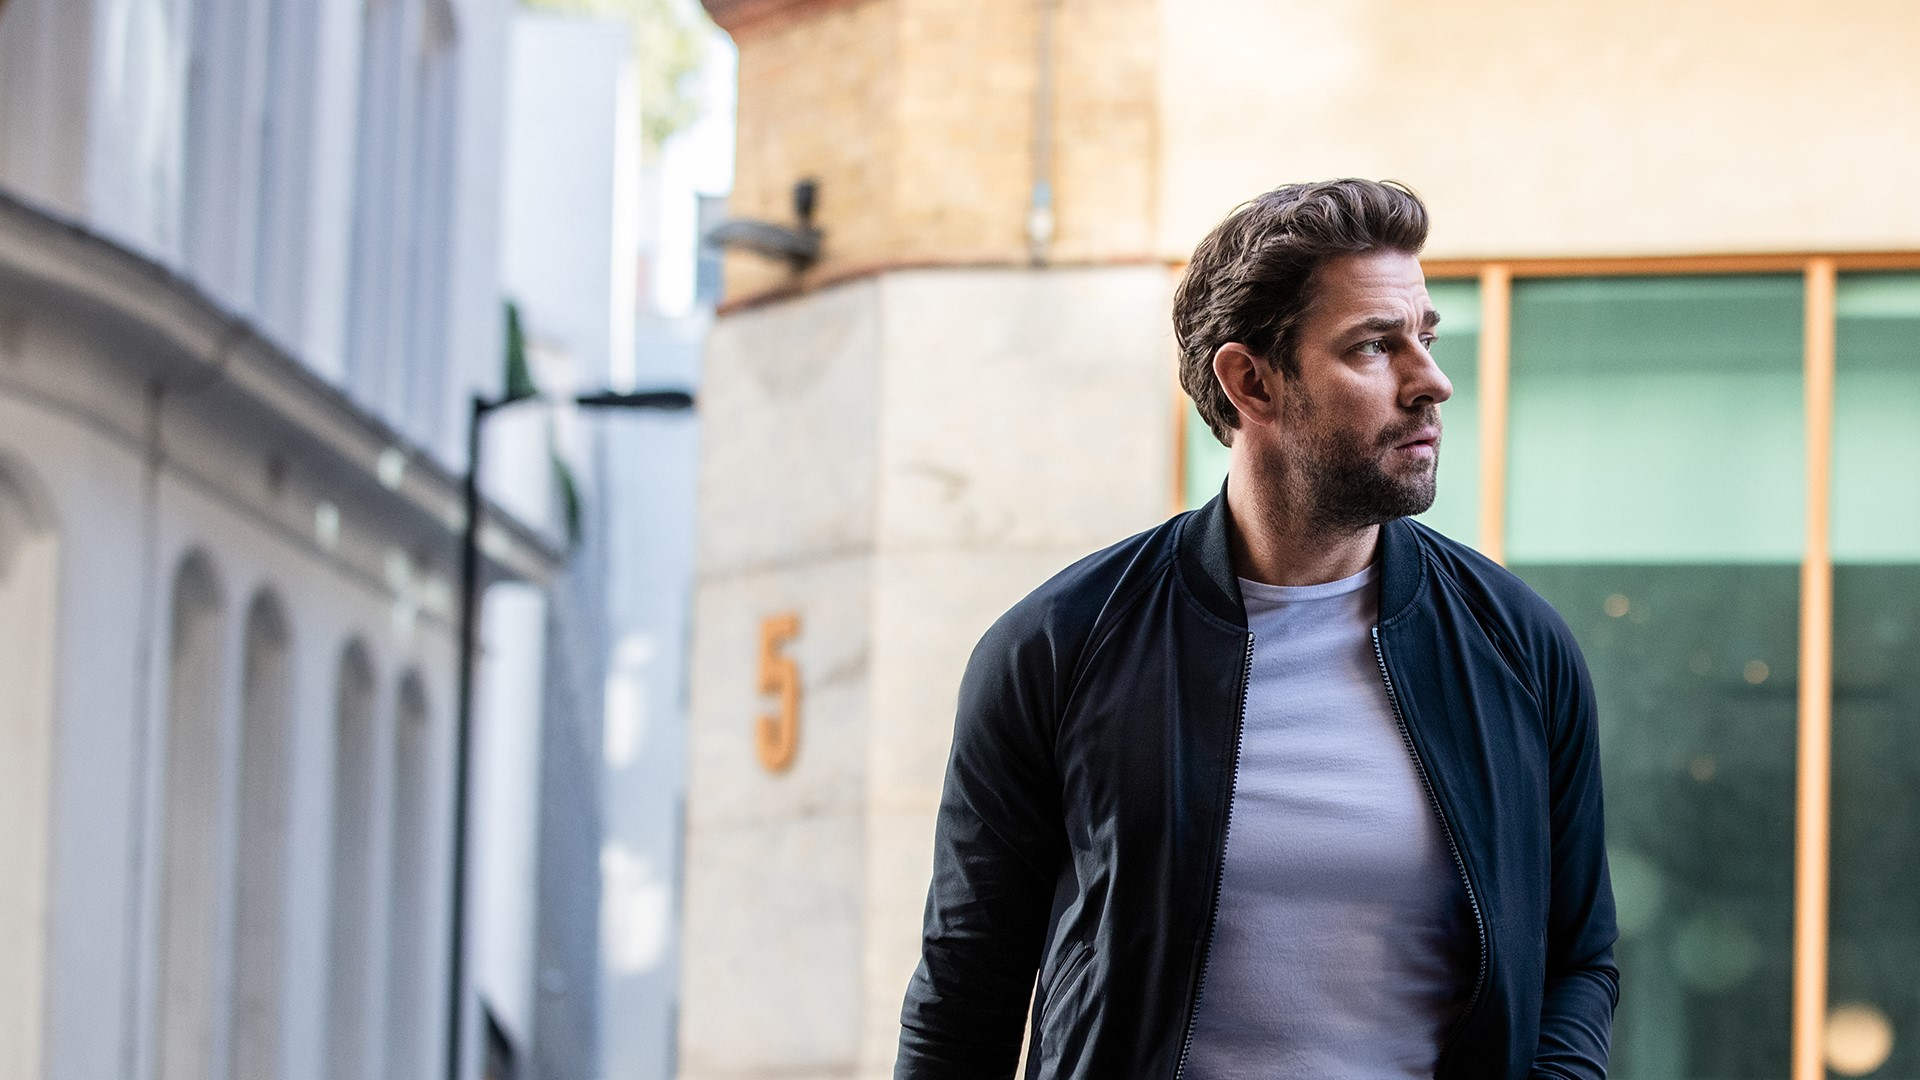 Jack Ryan Season 3 Release Date, Spoilers, Theories Jack to get New Partners on Secret World Missions